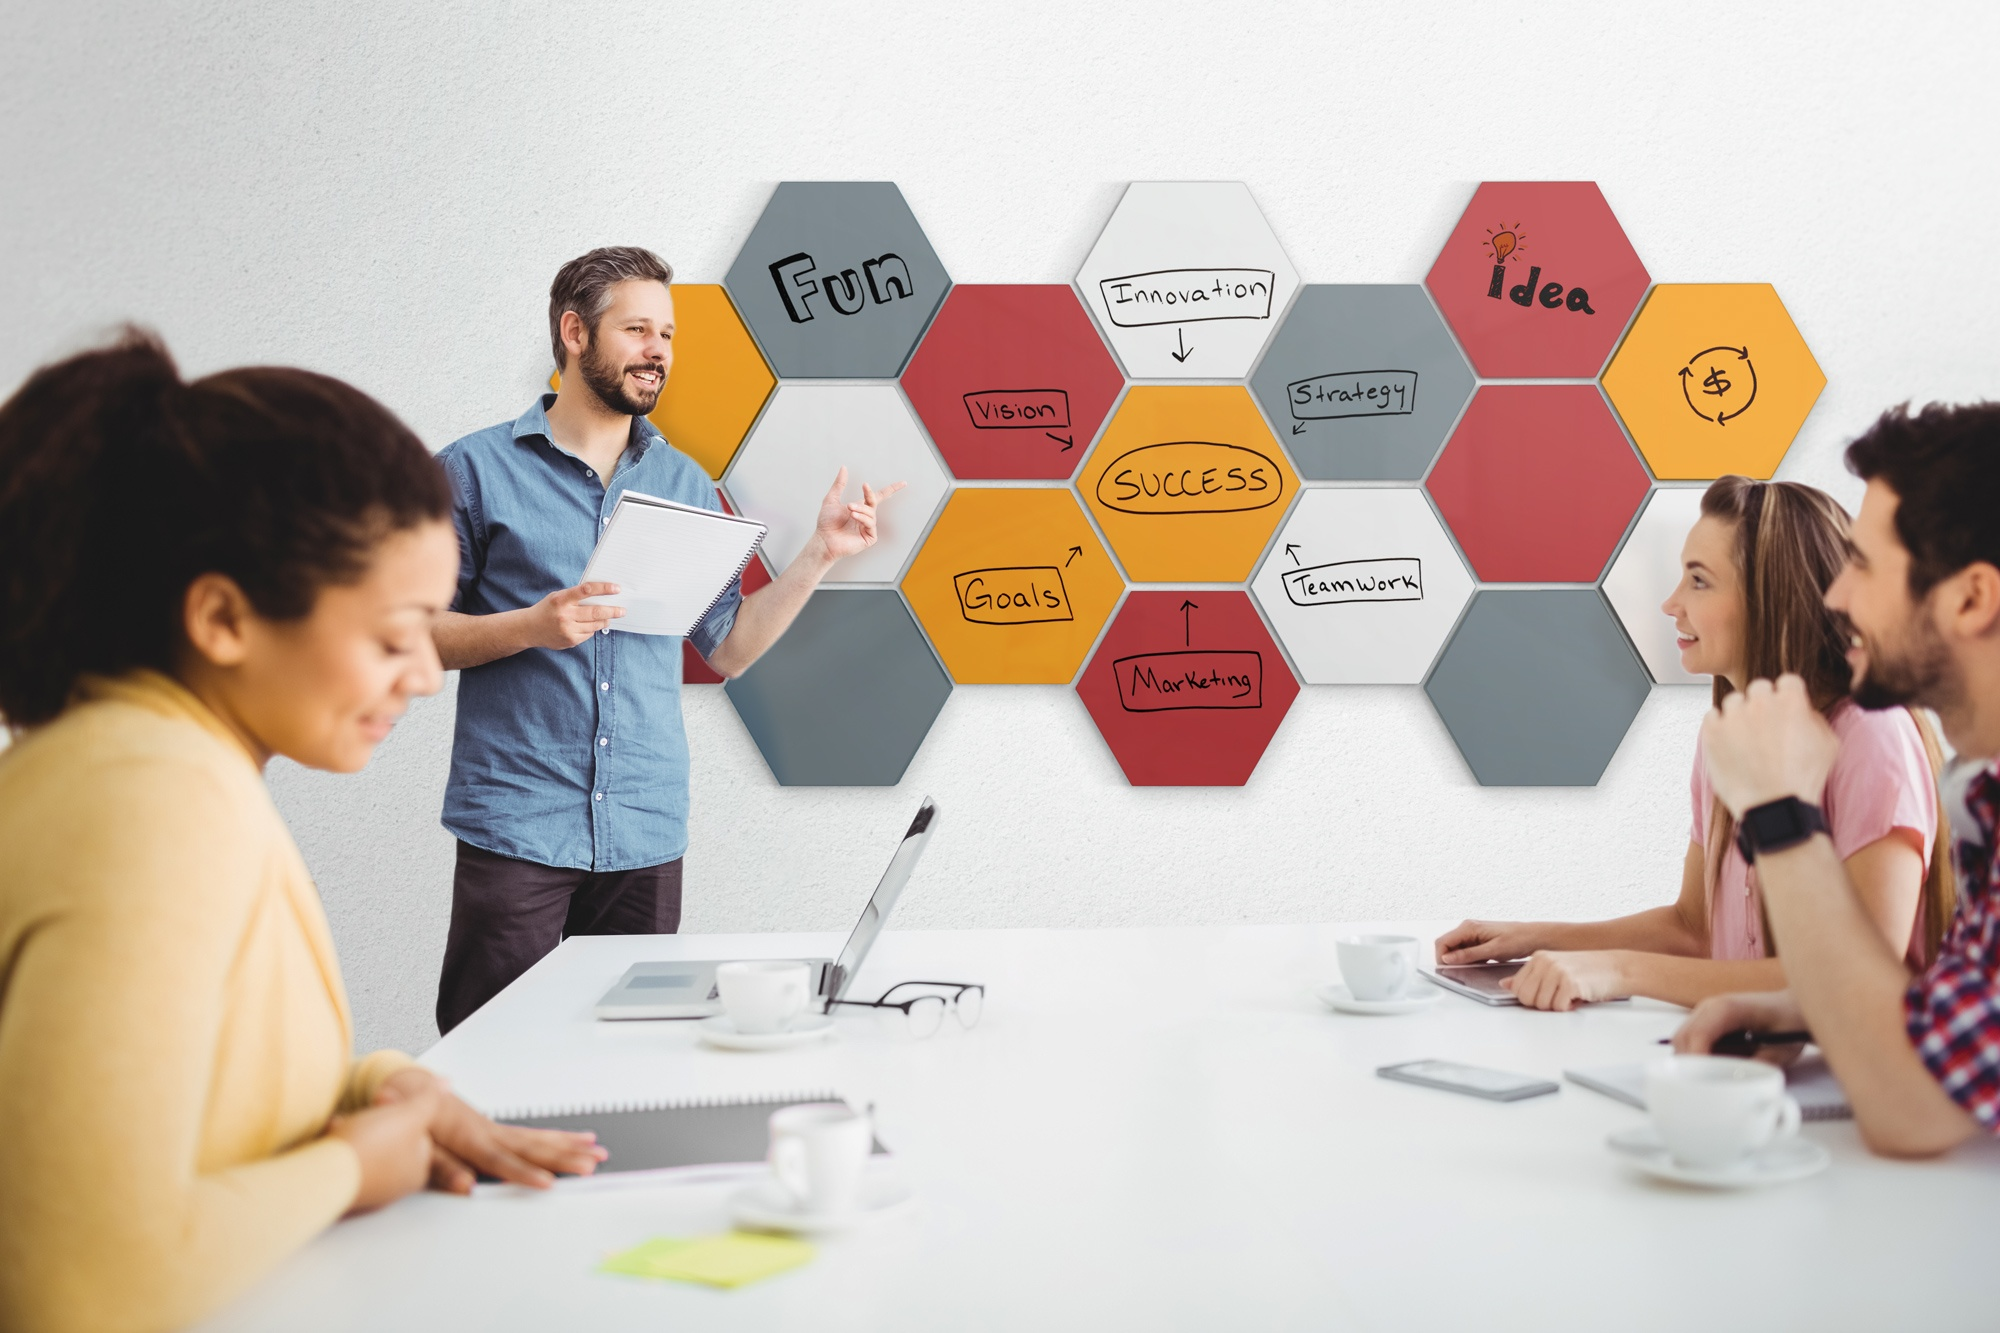 A photo of the product Hex in an meeting environment